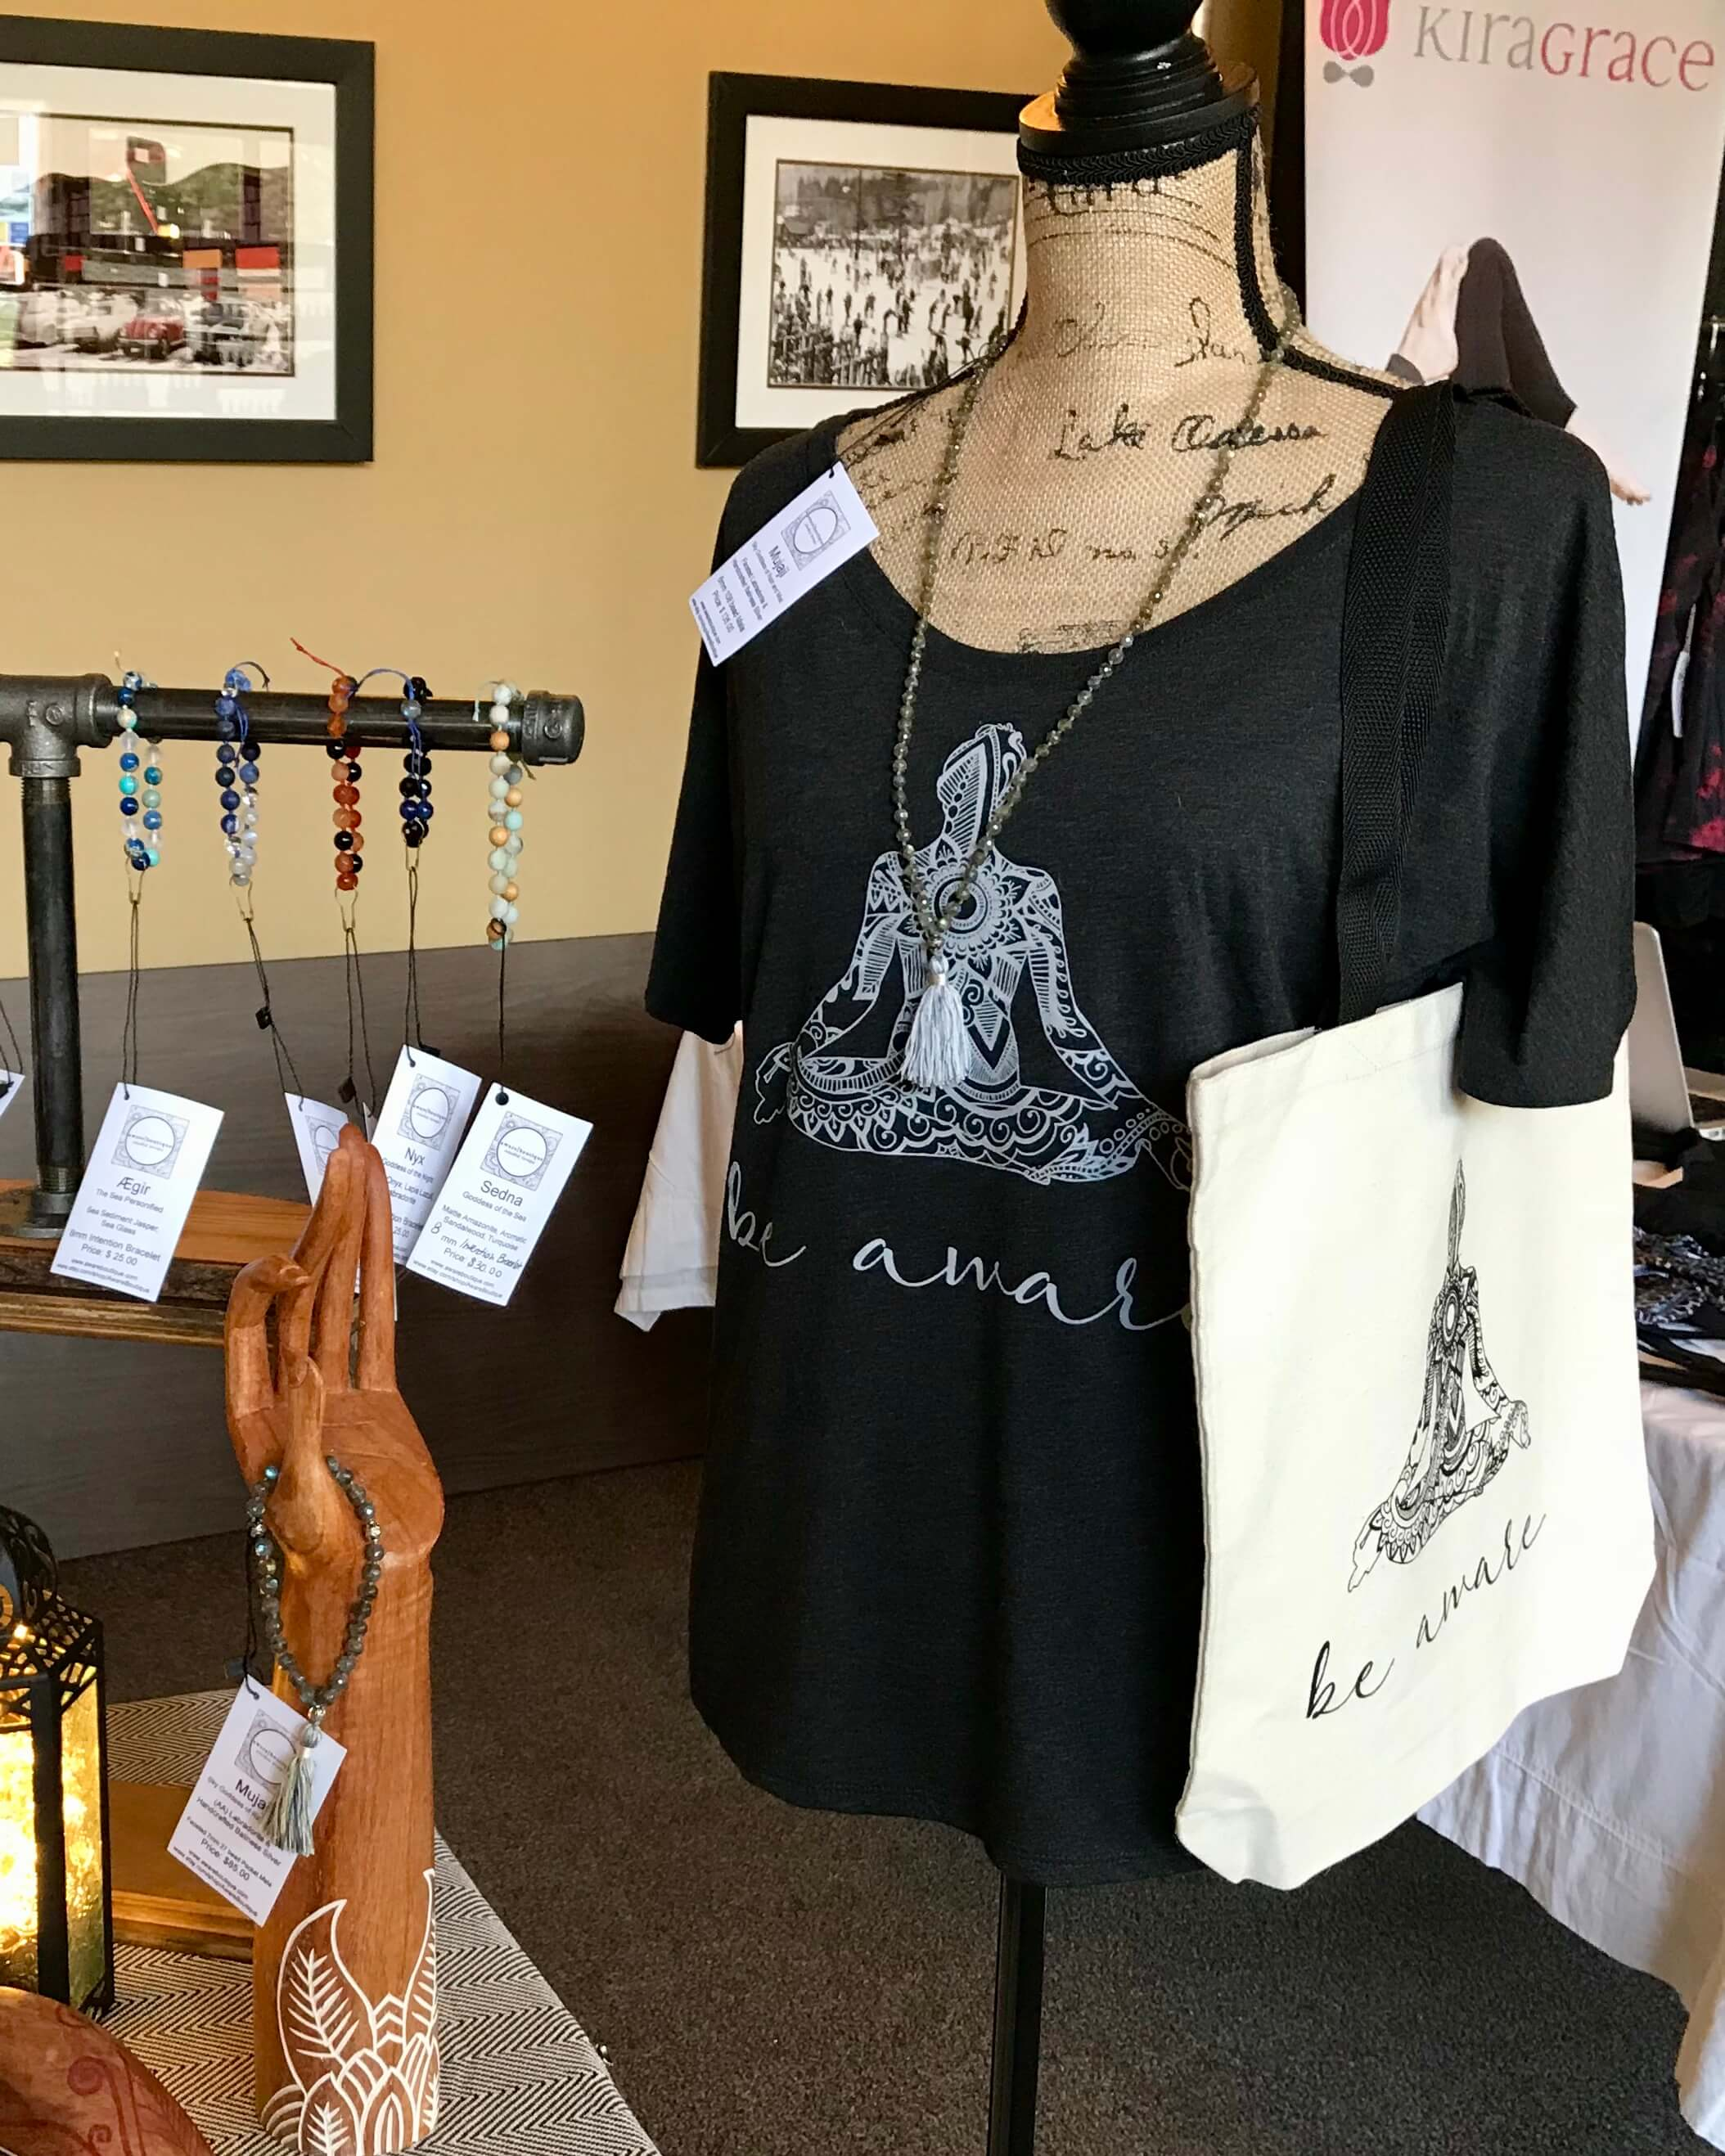 Aware Boutique by Ania Parks: Sedna Mala, be aware hand drawn printed tee and tote bag